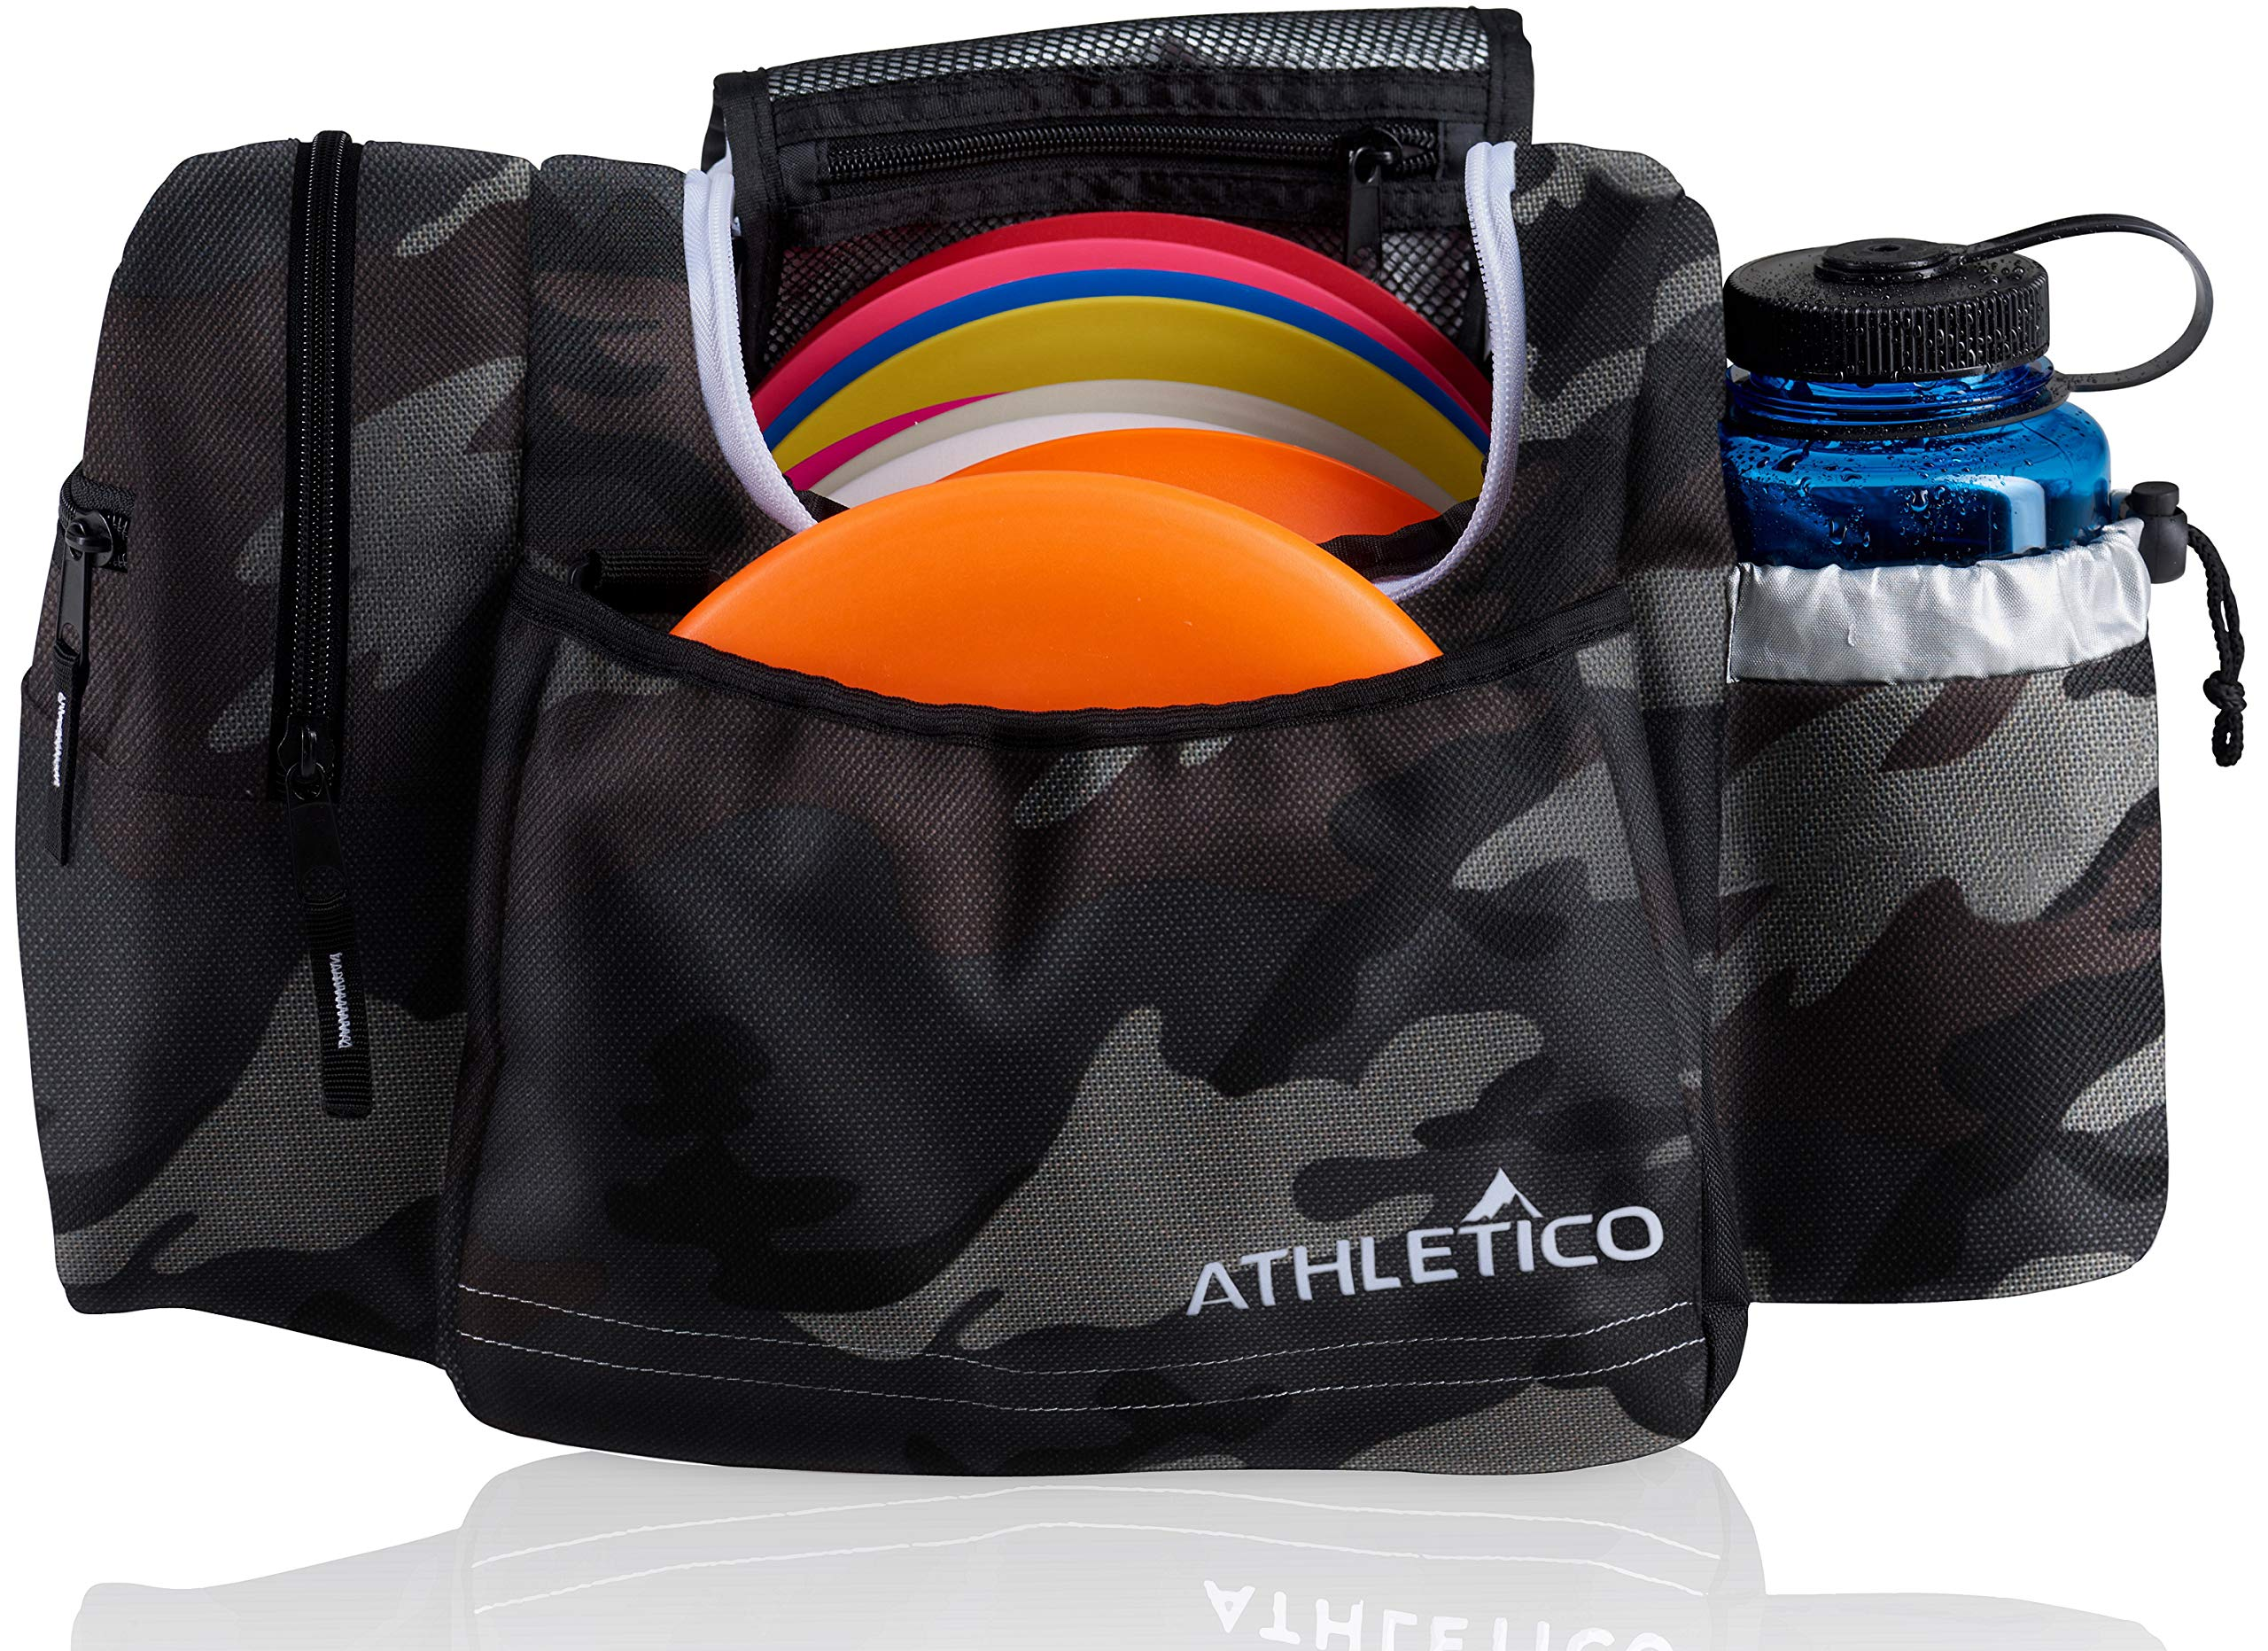 Athletico Disc Golf Bag - Tote Bag for Frisbee Golf - Holds 10-14 Discs, Water Bottle, and Accessories (Gray Camo) by Athletico